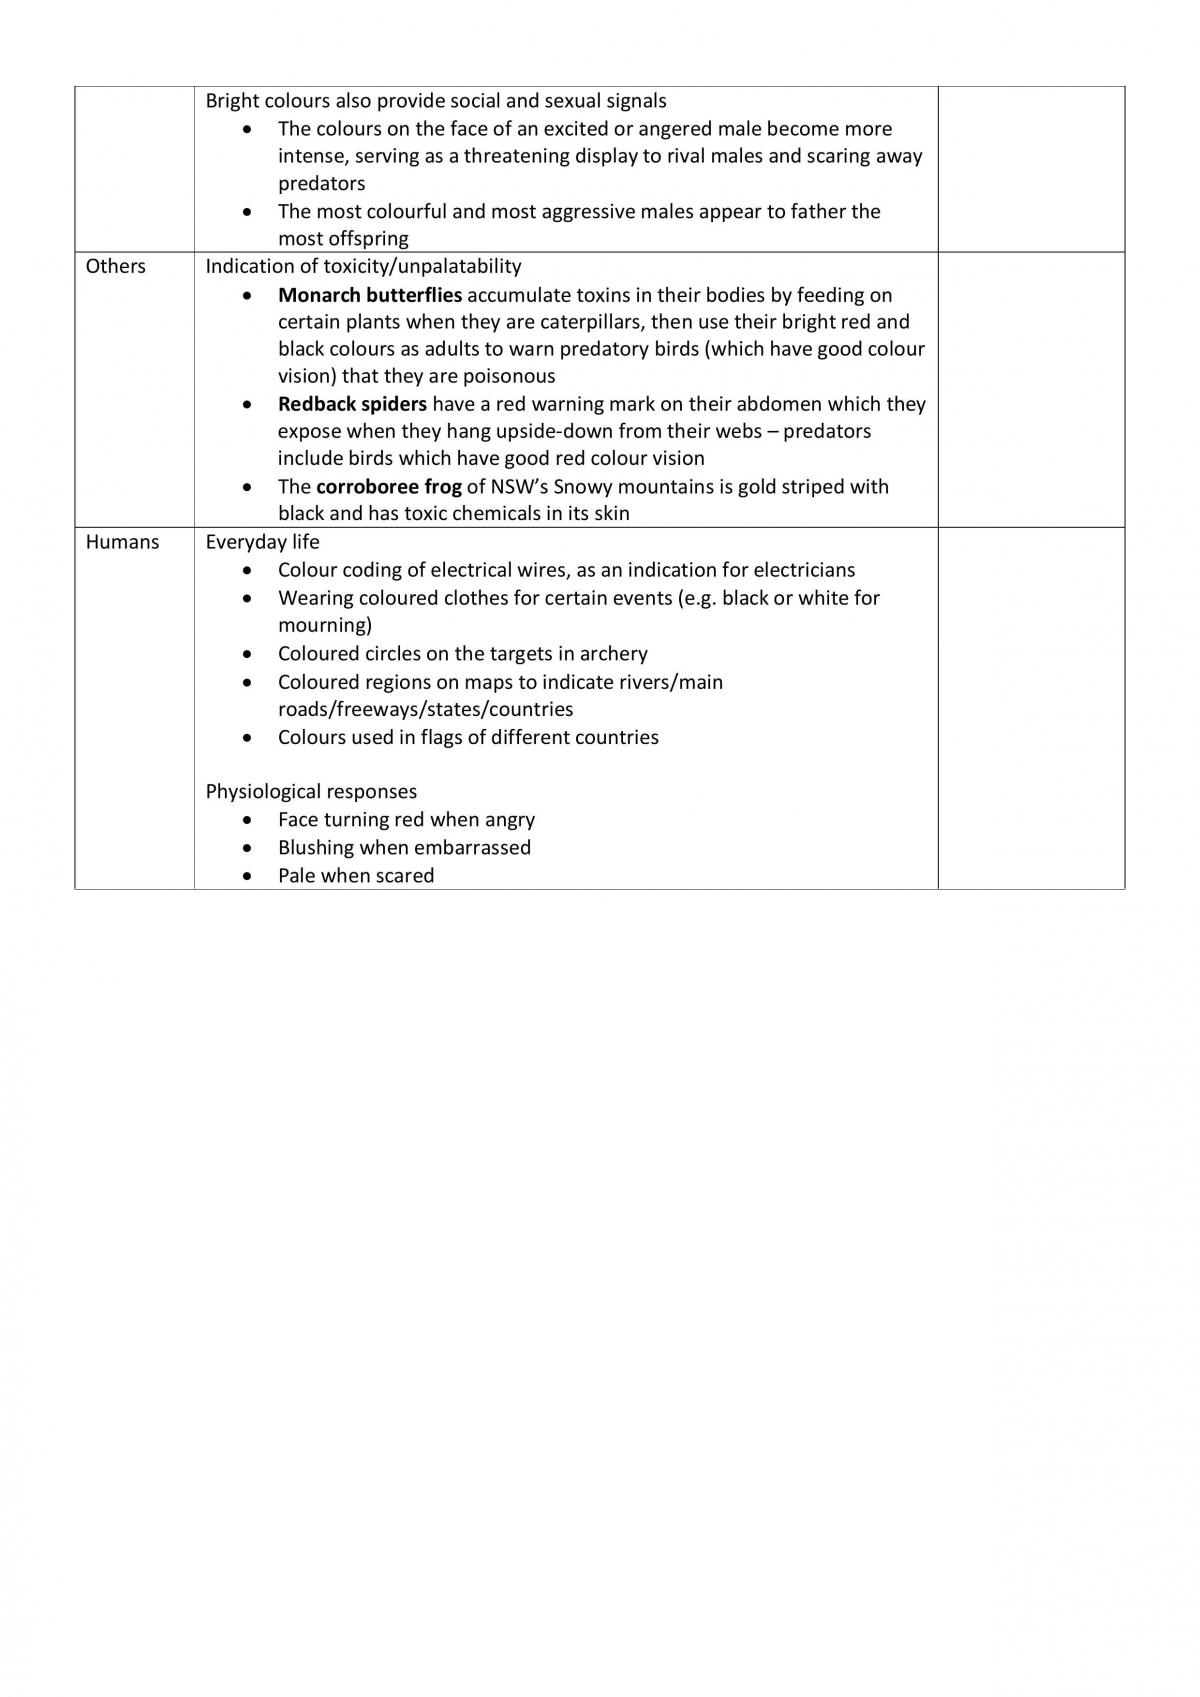 Biology Topic- Communication Study Notes - Page 17